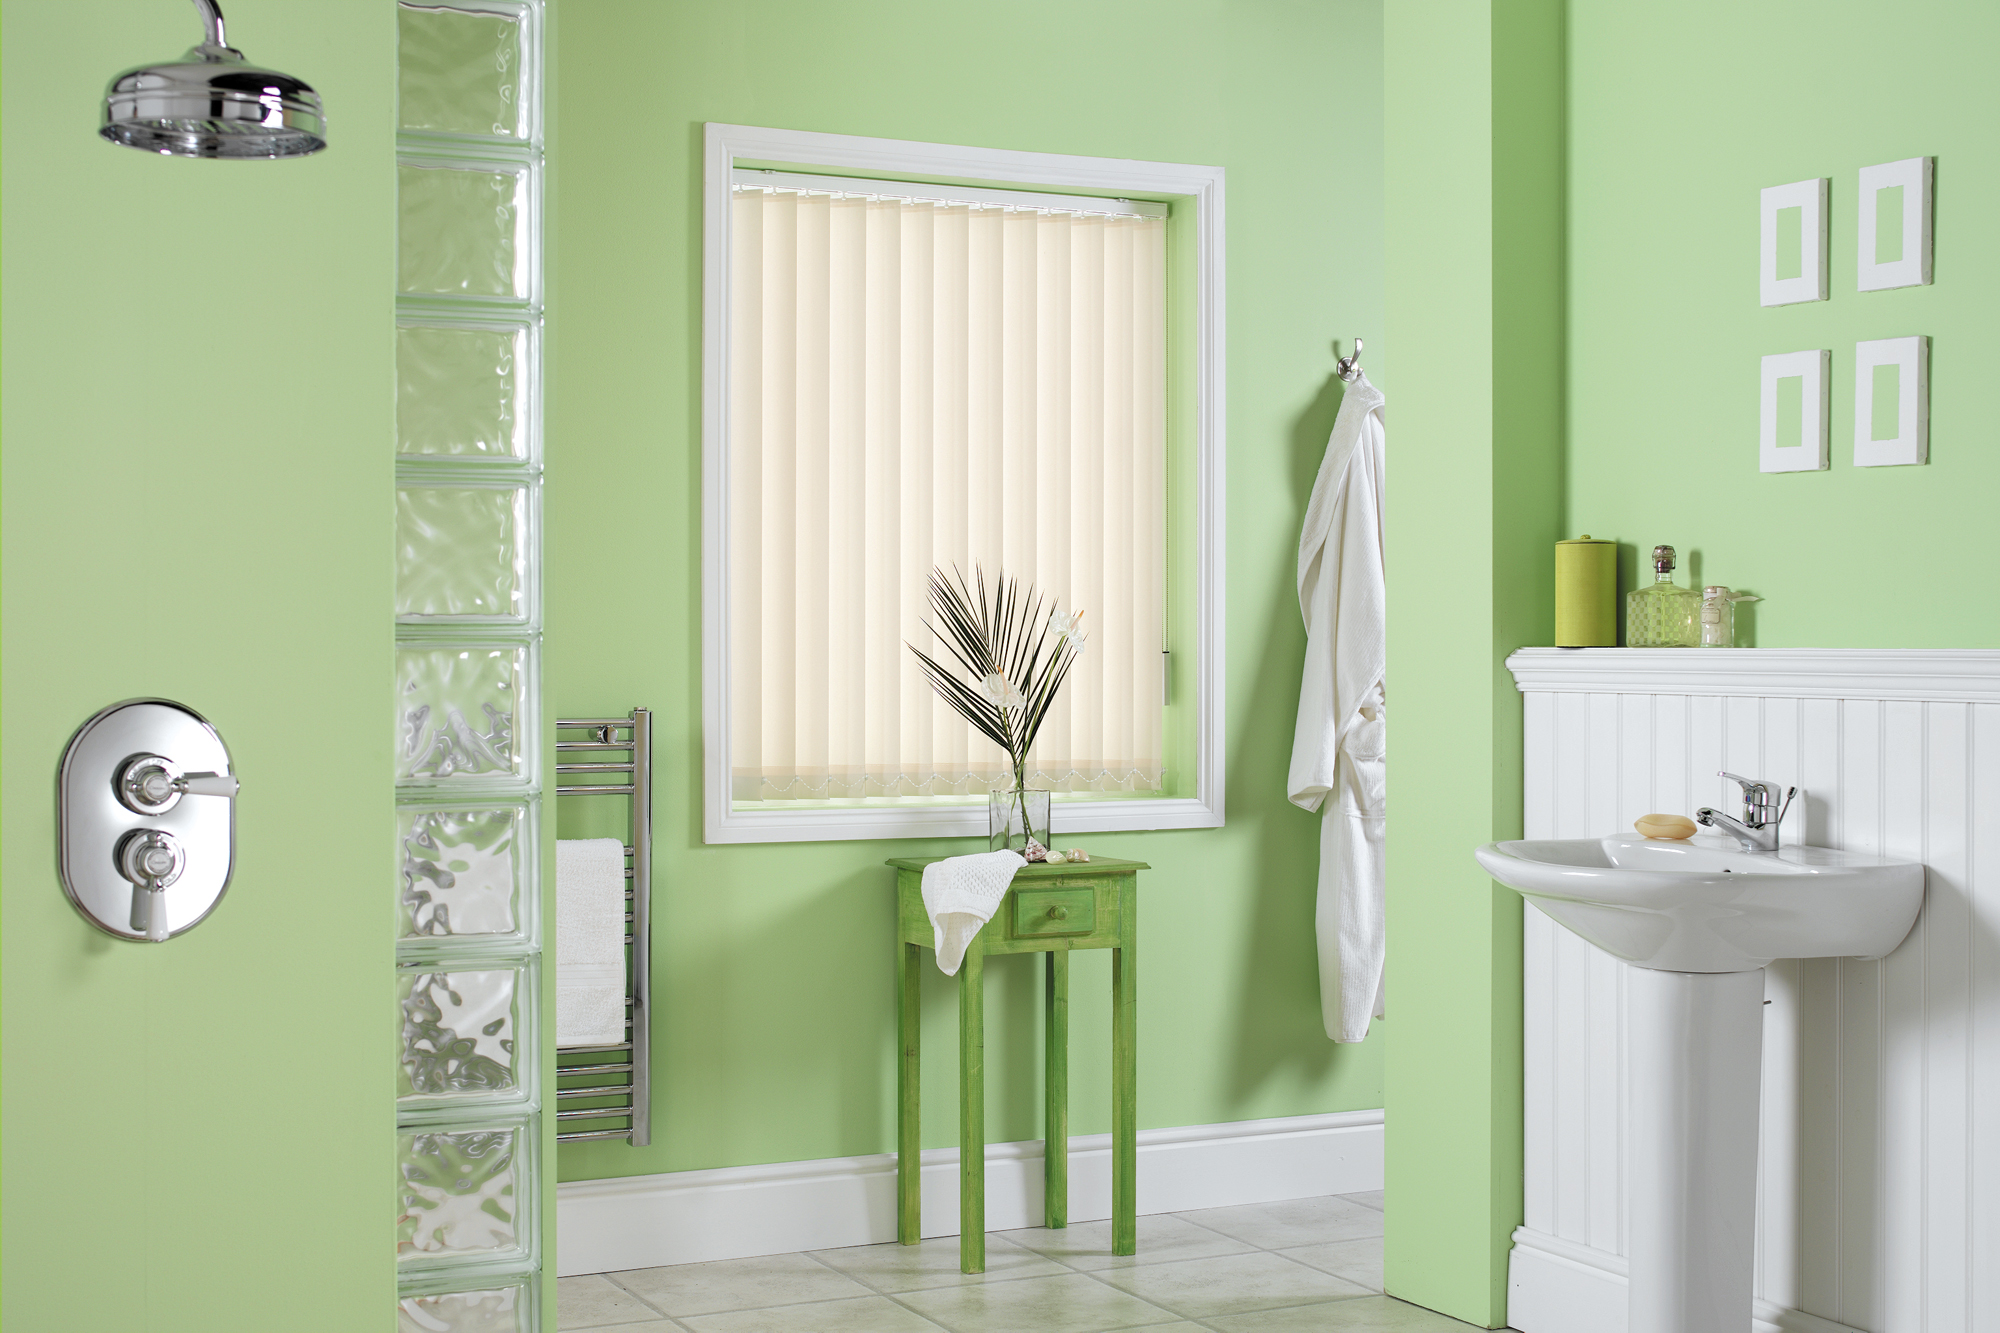 waterproof window shower pinterest glass door ideas bathrooms about curtains curtain photos outside on floor recessed glamorous cabinet with pics privacy no bathroom coverings for diy small in modern blinds